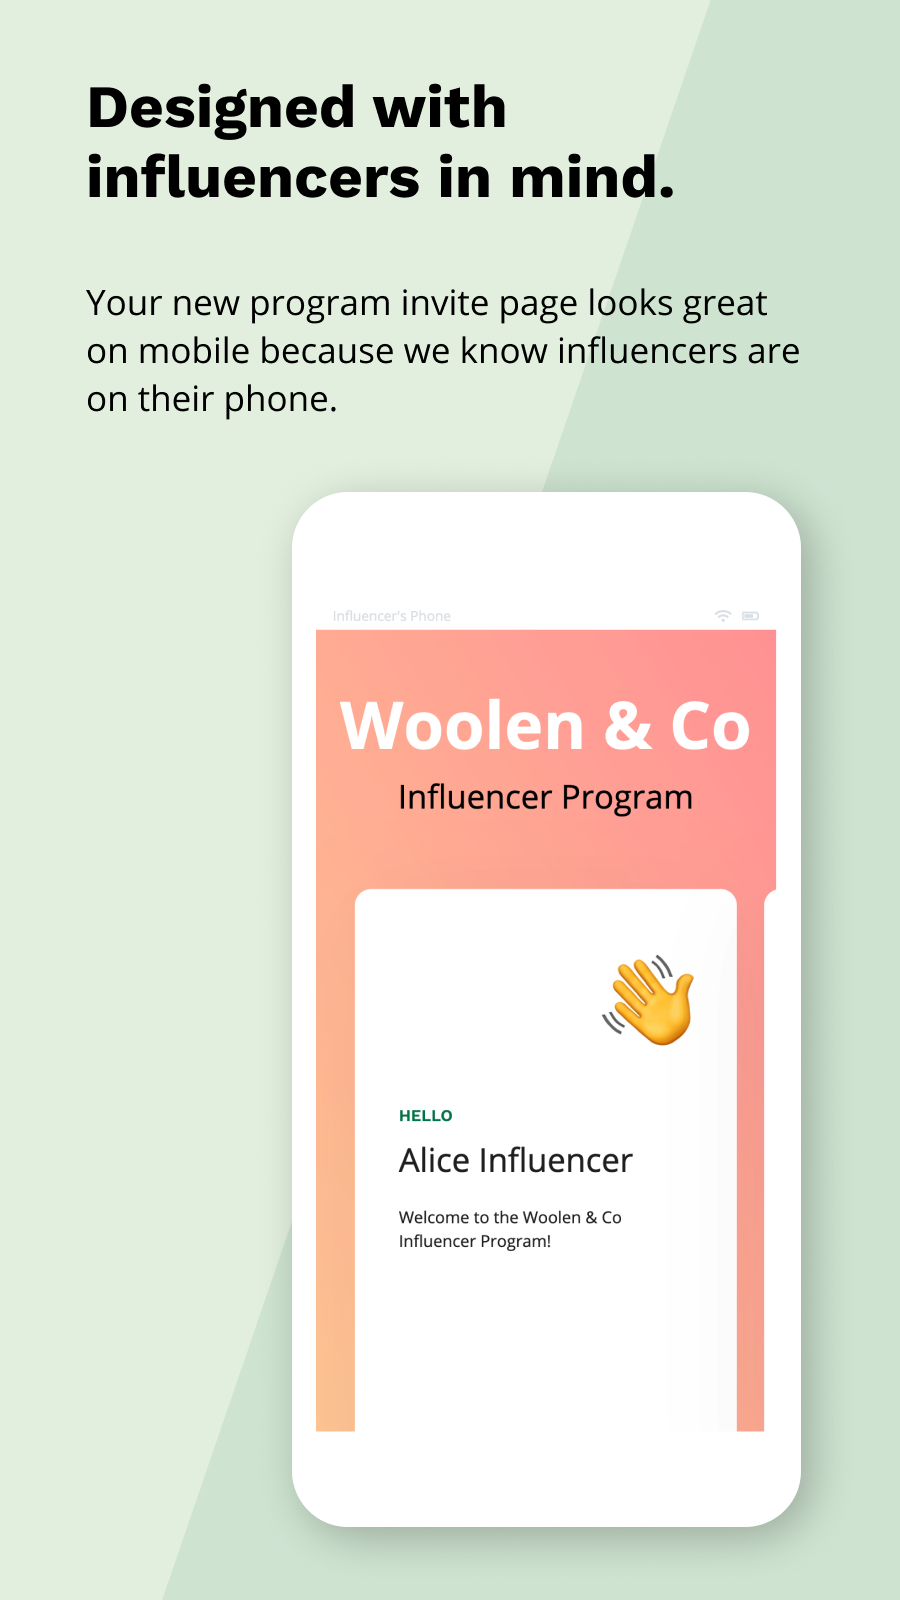 Designed for mobile (with influencers in mind)